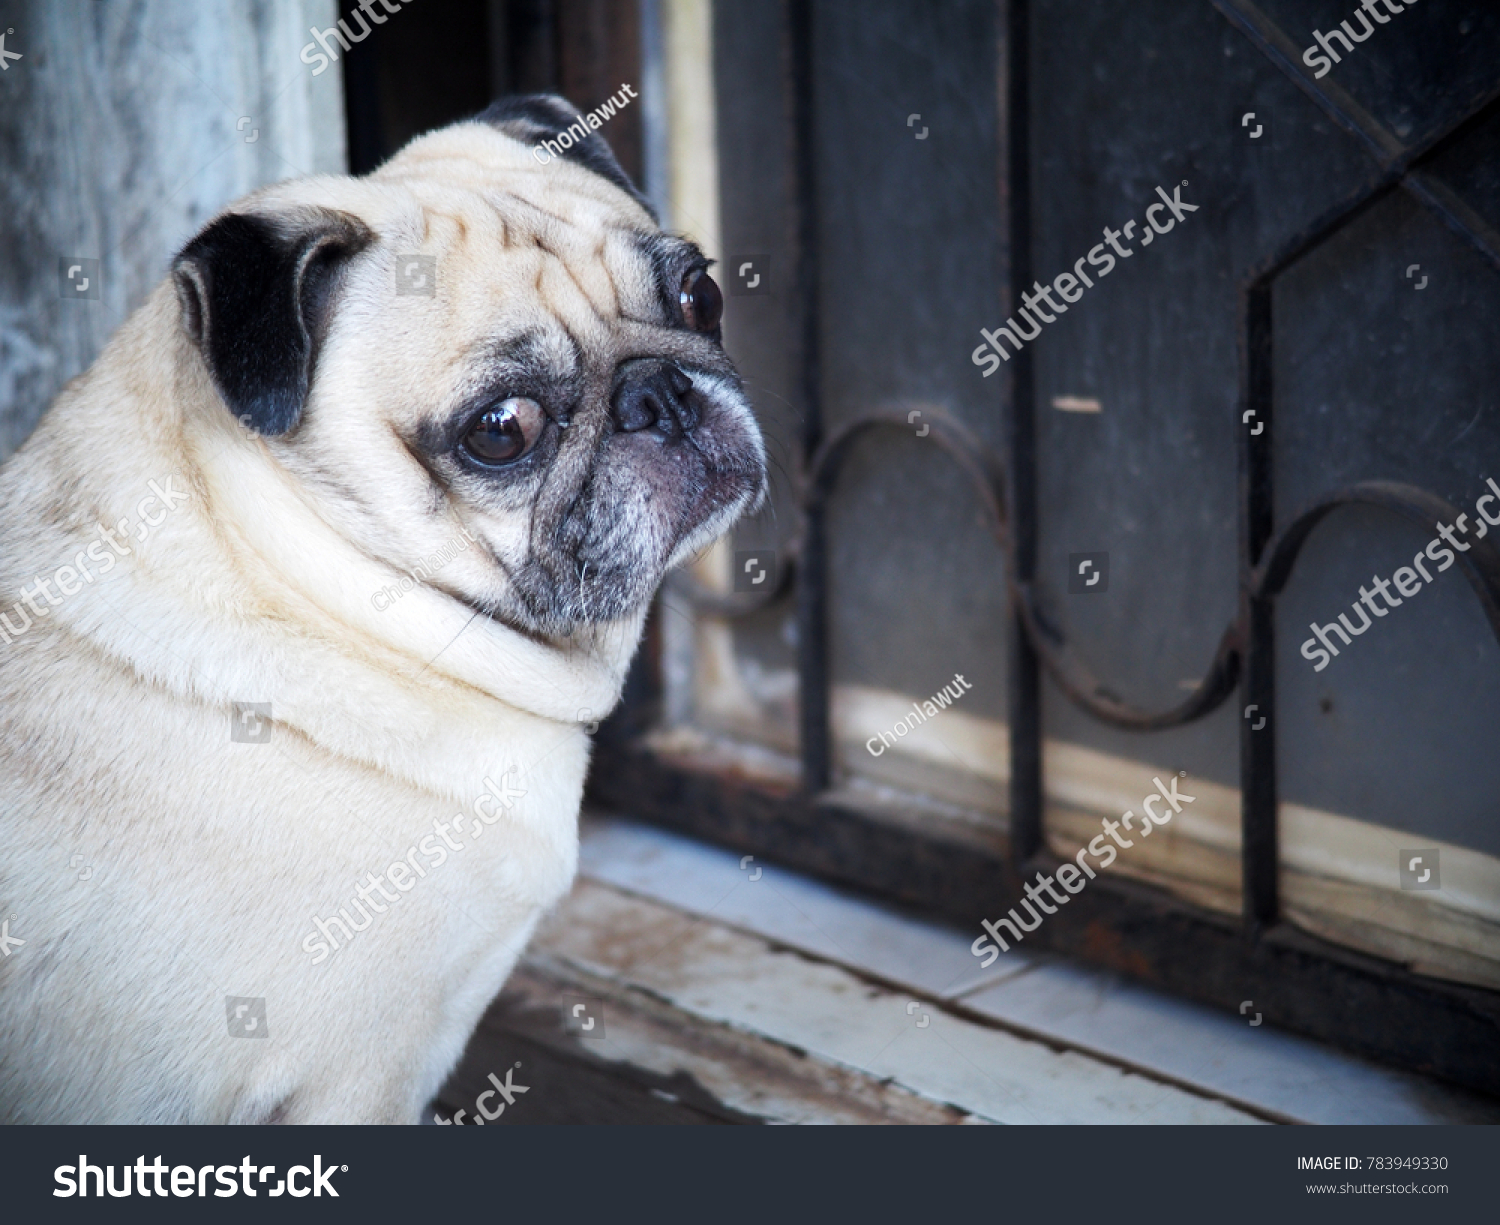 Portraits photo of a lovely white fat cute pug dog sitting at house door making sad